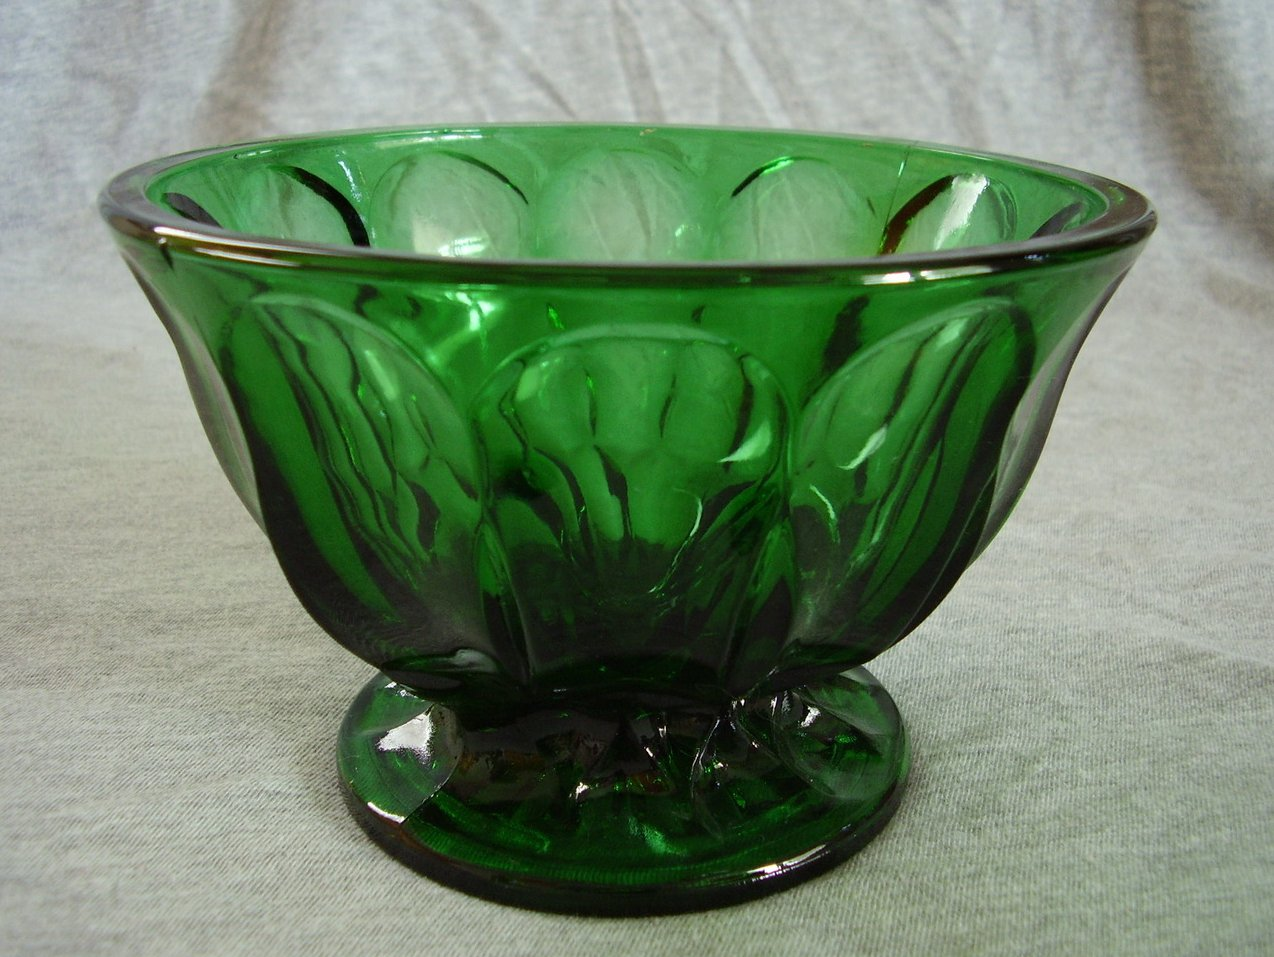 1970s Anchor Hocking Fairfield Bowl Spearmint Green